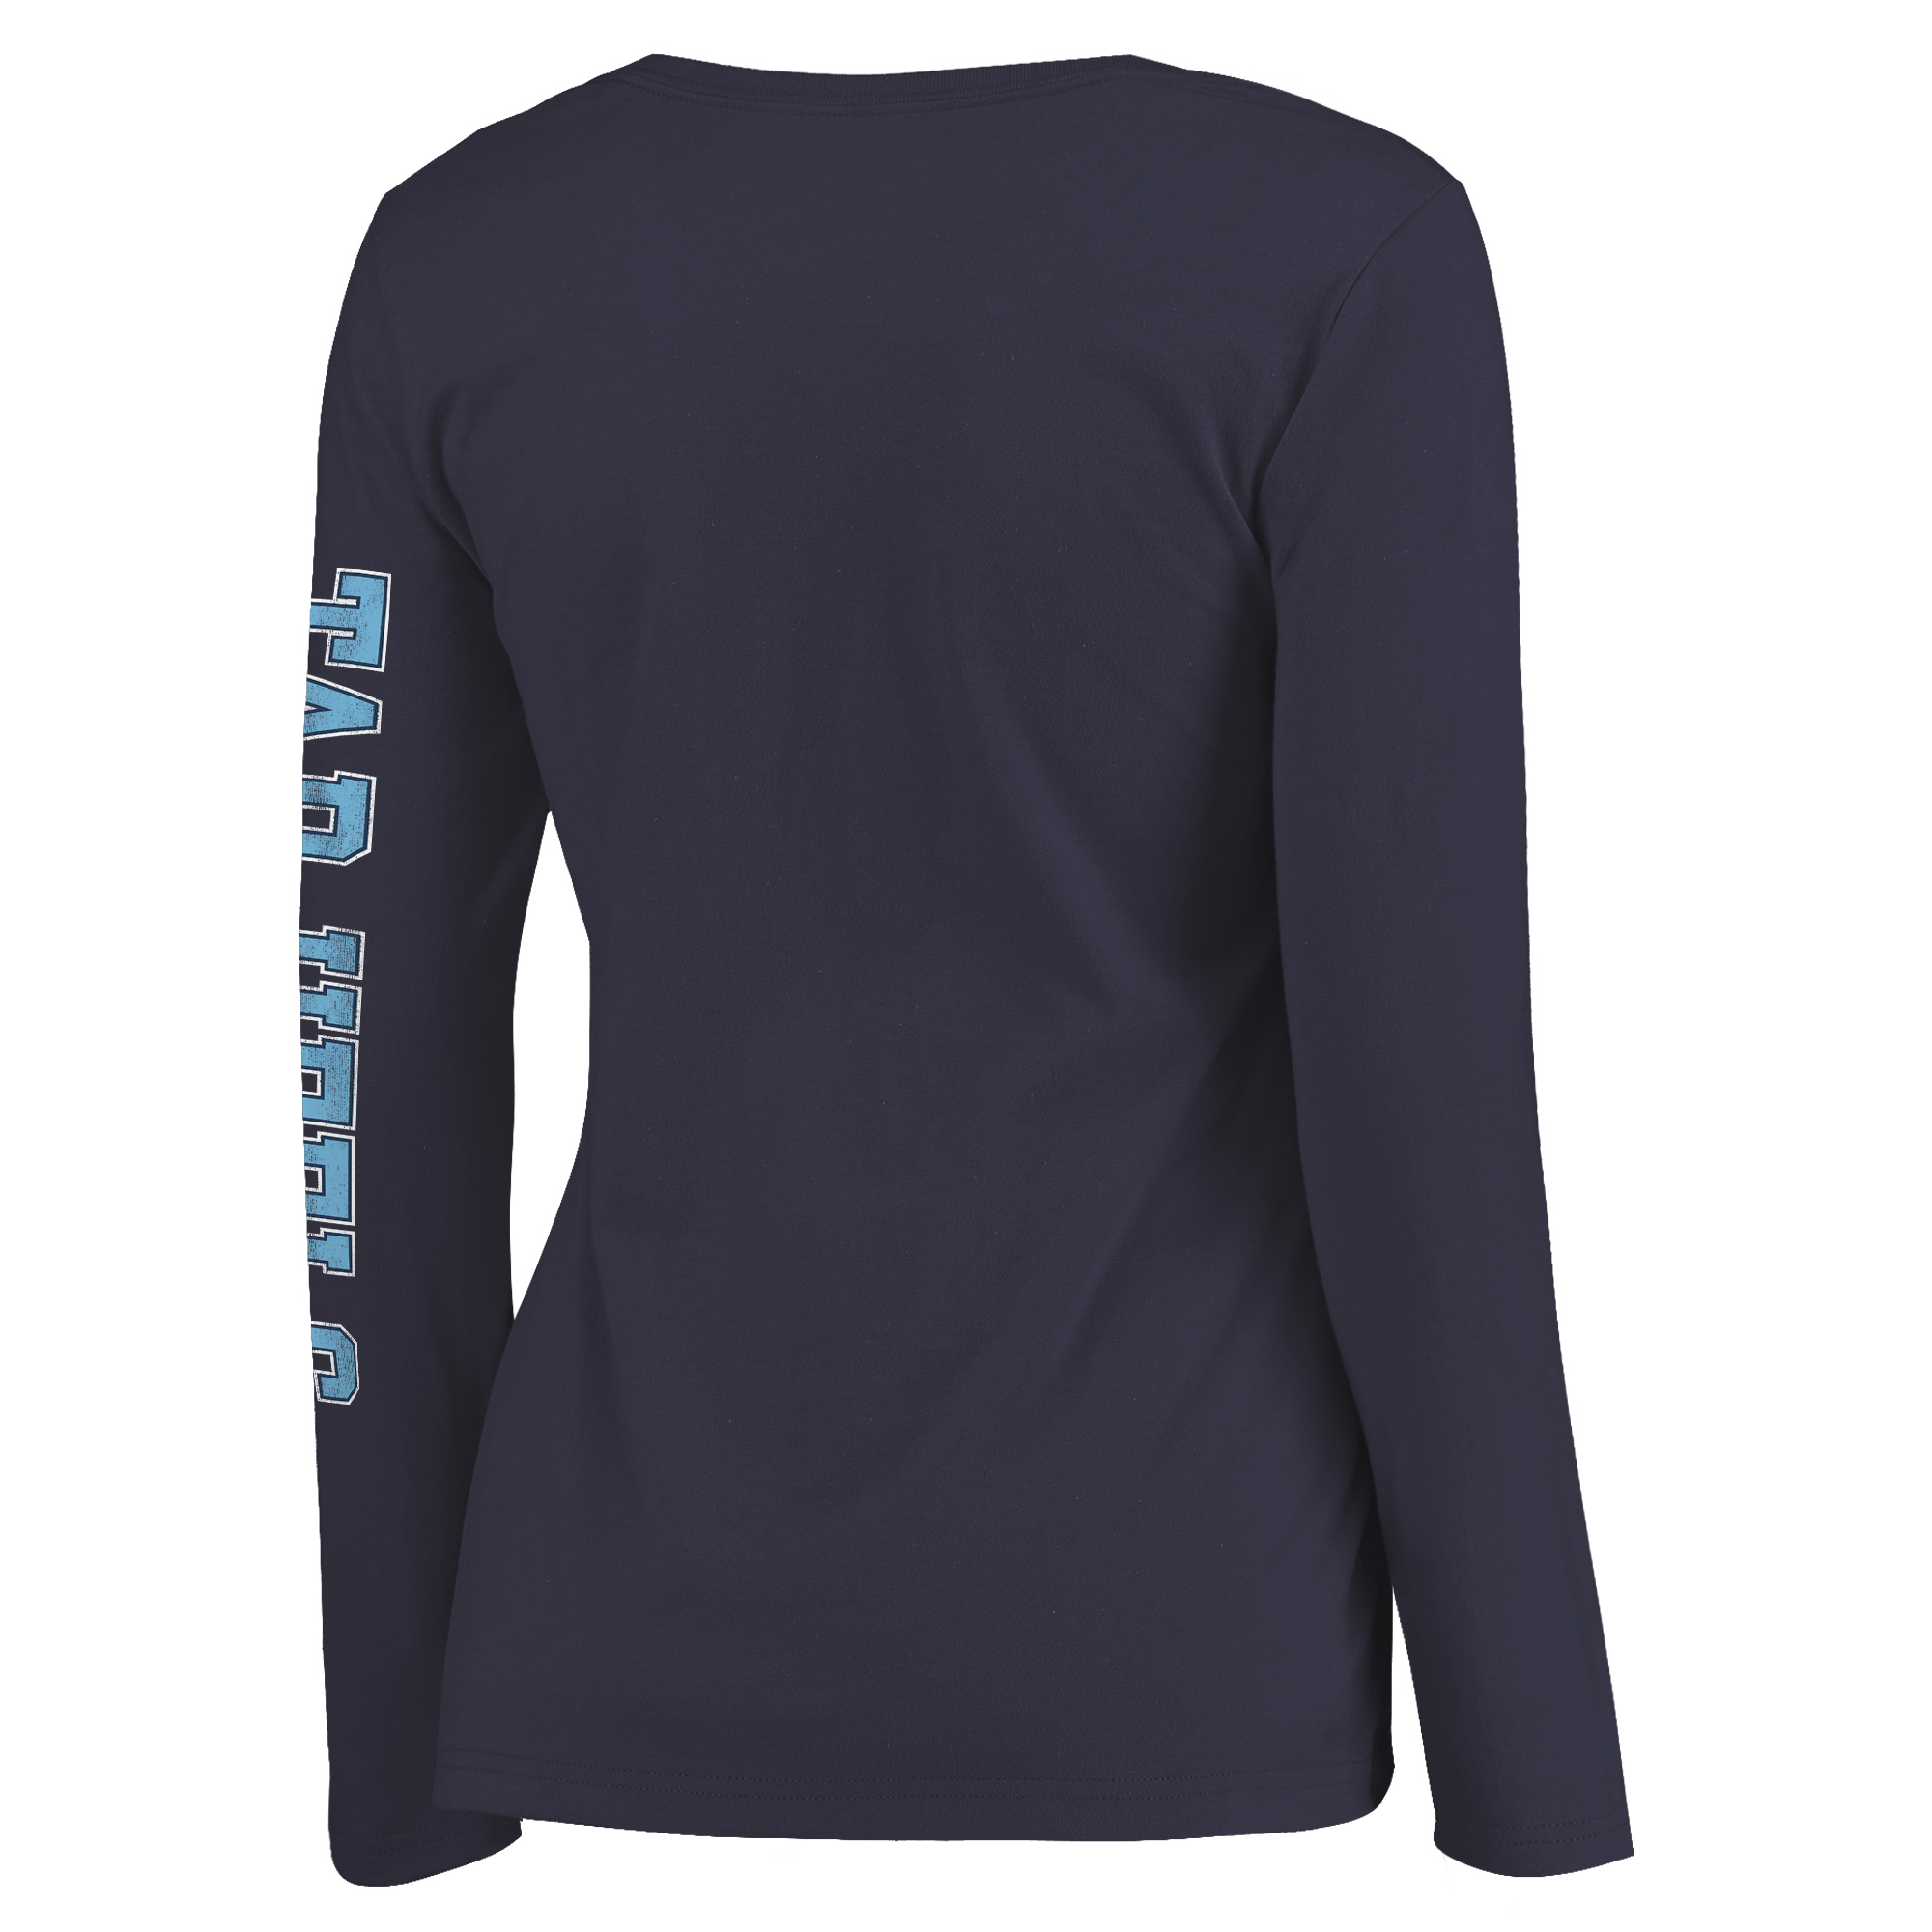 be1a705a North Carolina Tar Heels Fanatics Branded Women's Secondary Distressed Arch  Over Logo Long Sleeve Hit T-Shirt - Navy - Walmart.com